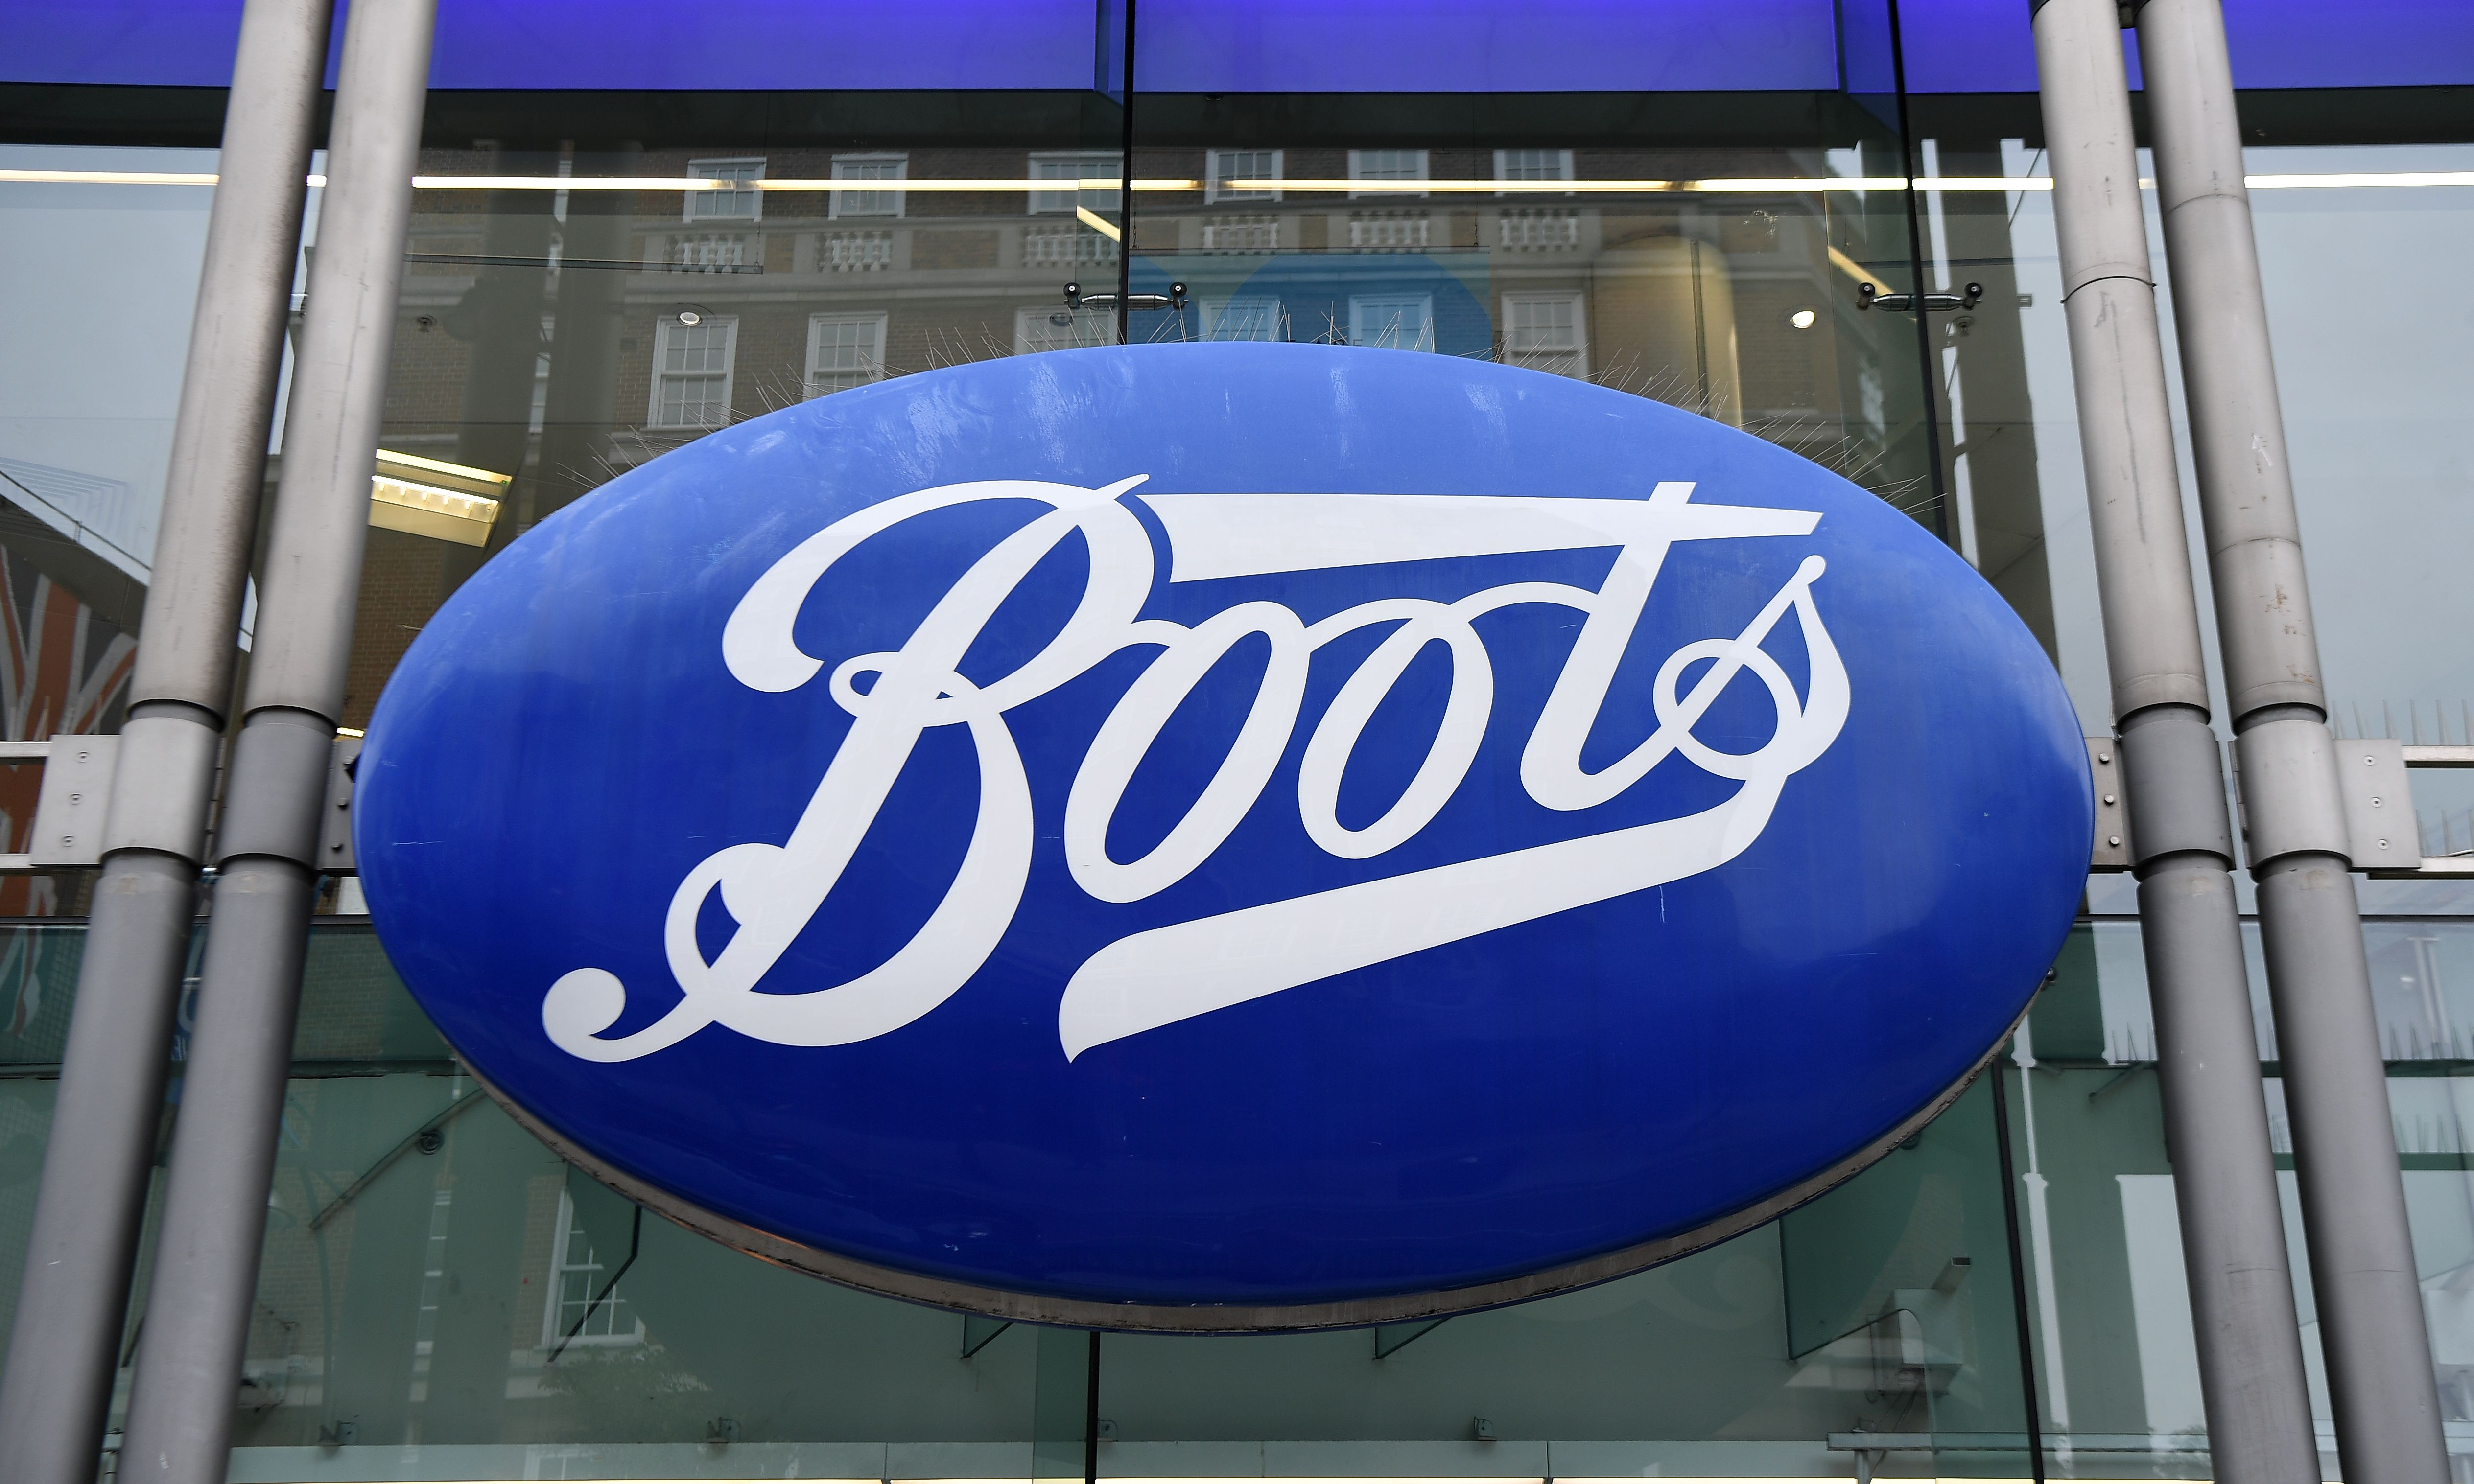 A Boots sign outside a Boots pharmacy in central London, Britain, 09 July 2020. High Street pharmacy Boots has announced it is to cut some four thousand jobs as it prepares to close some stores due to the lockdown caused by the Coronavirus. The UK's economy has suffered a two percent fall, its worst decline since the 2008 financial crash.Boots to cut jobs, London, United Kingdom - 09 Jul 2020